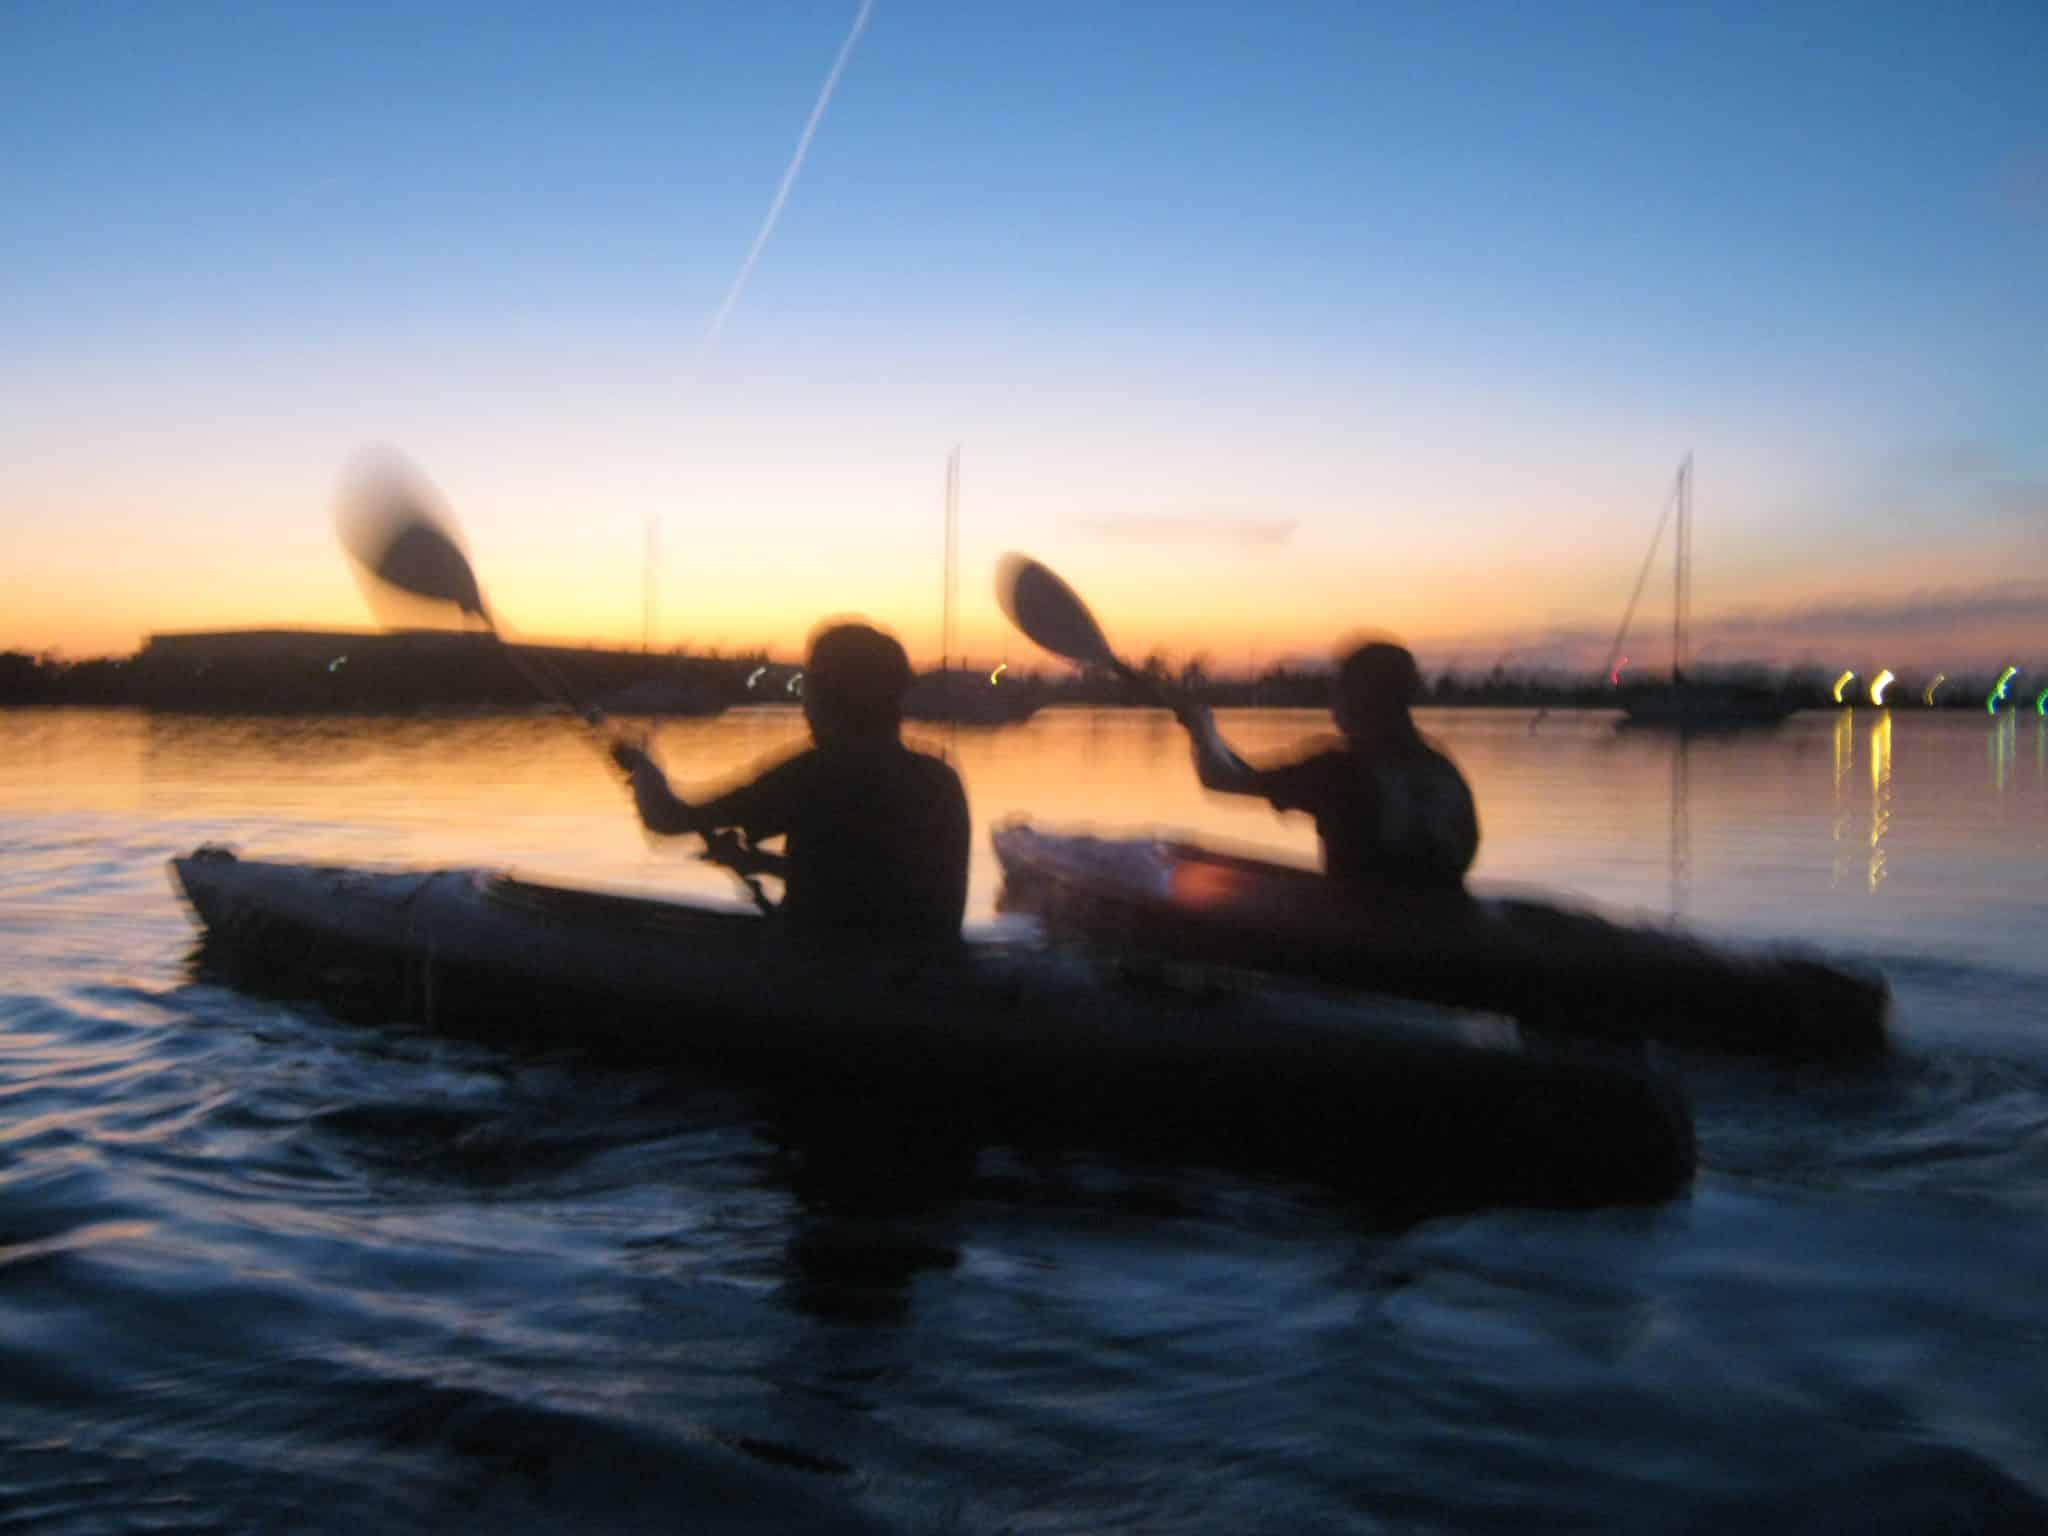 melanie-ceo-rare-finds-travel-sunset-kayak-blue-planet-key-west